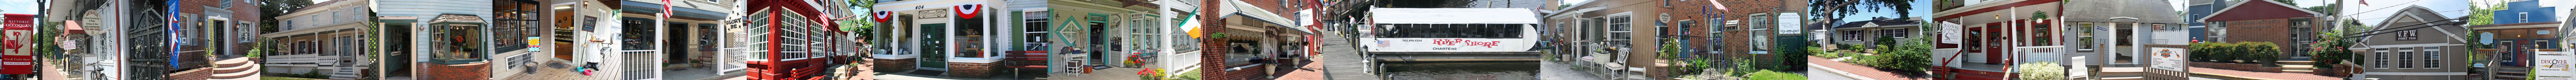 Historic Occoquan Chocolate Walk